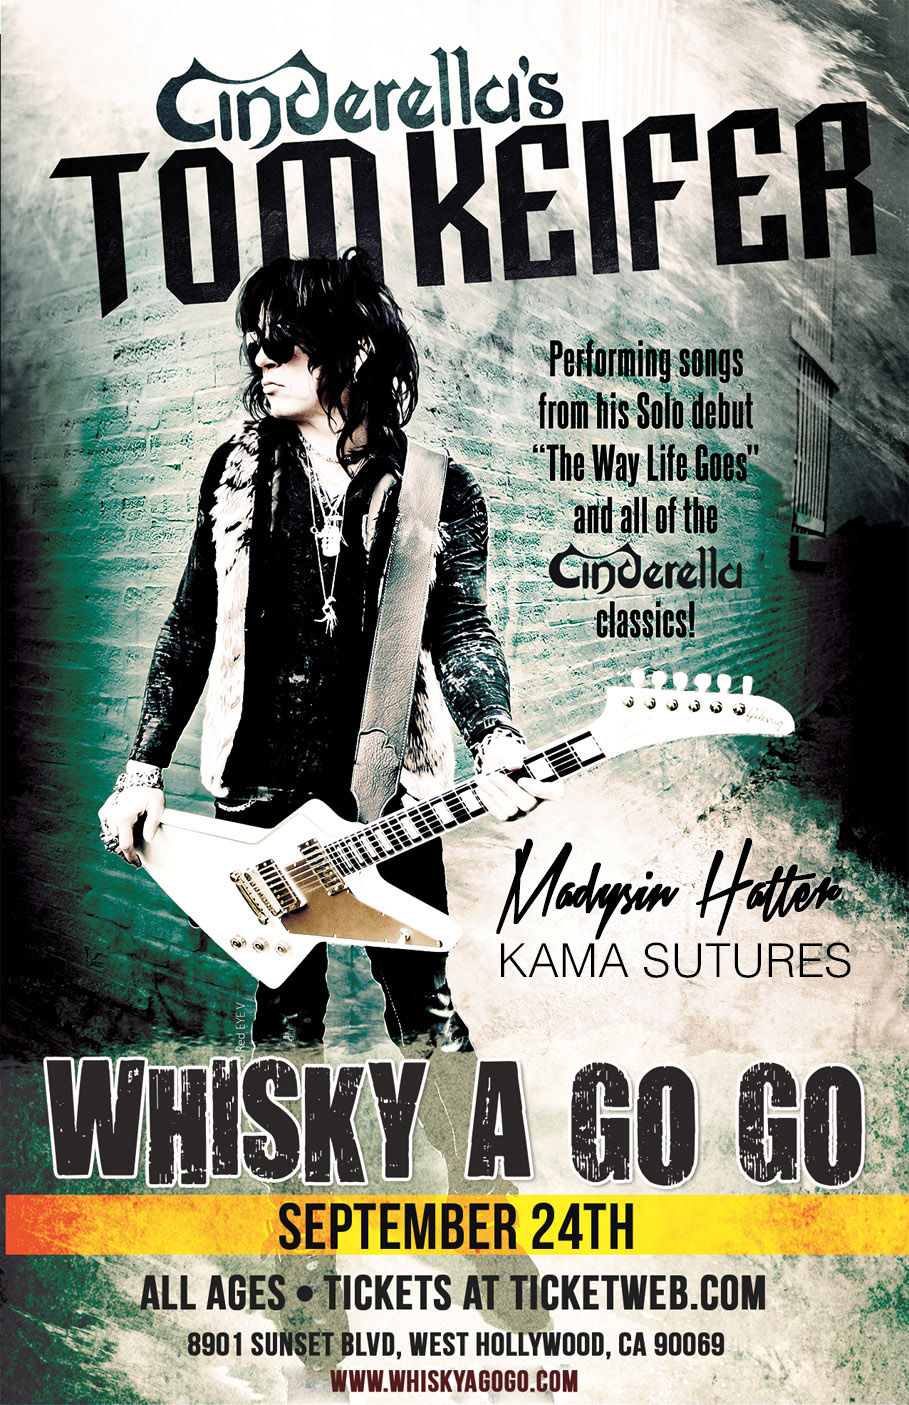 MADYSIN HATTER's next LIVE SHOW is in LOS ANGELES at the world famous WHISKY A GO GO on 9/24, where she is the direct support for Cinderella's TOM KEIFER.